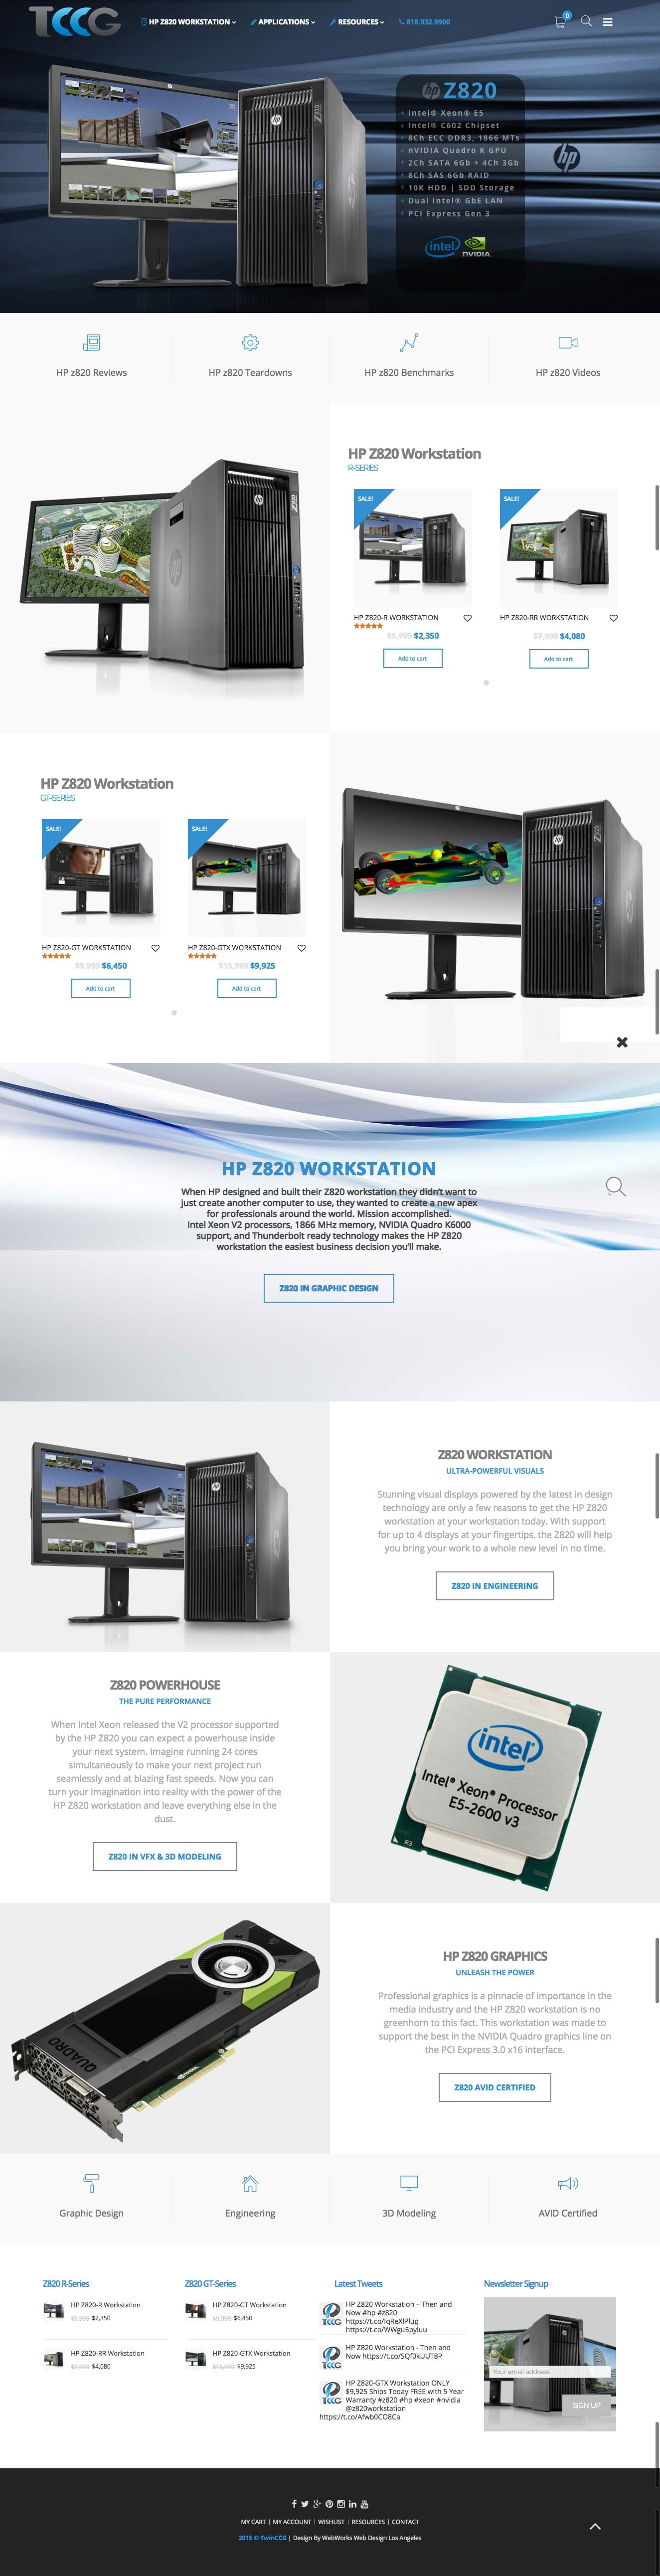 Web Design for TwinnCCG | Los Angeles